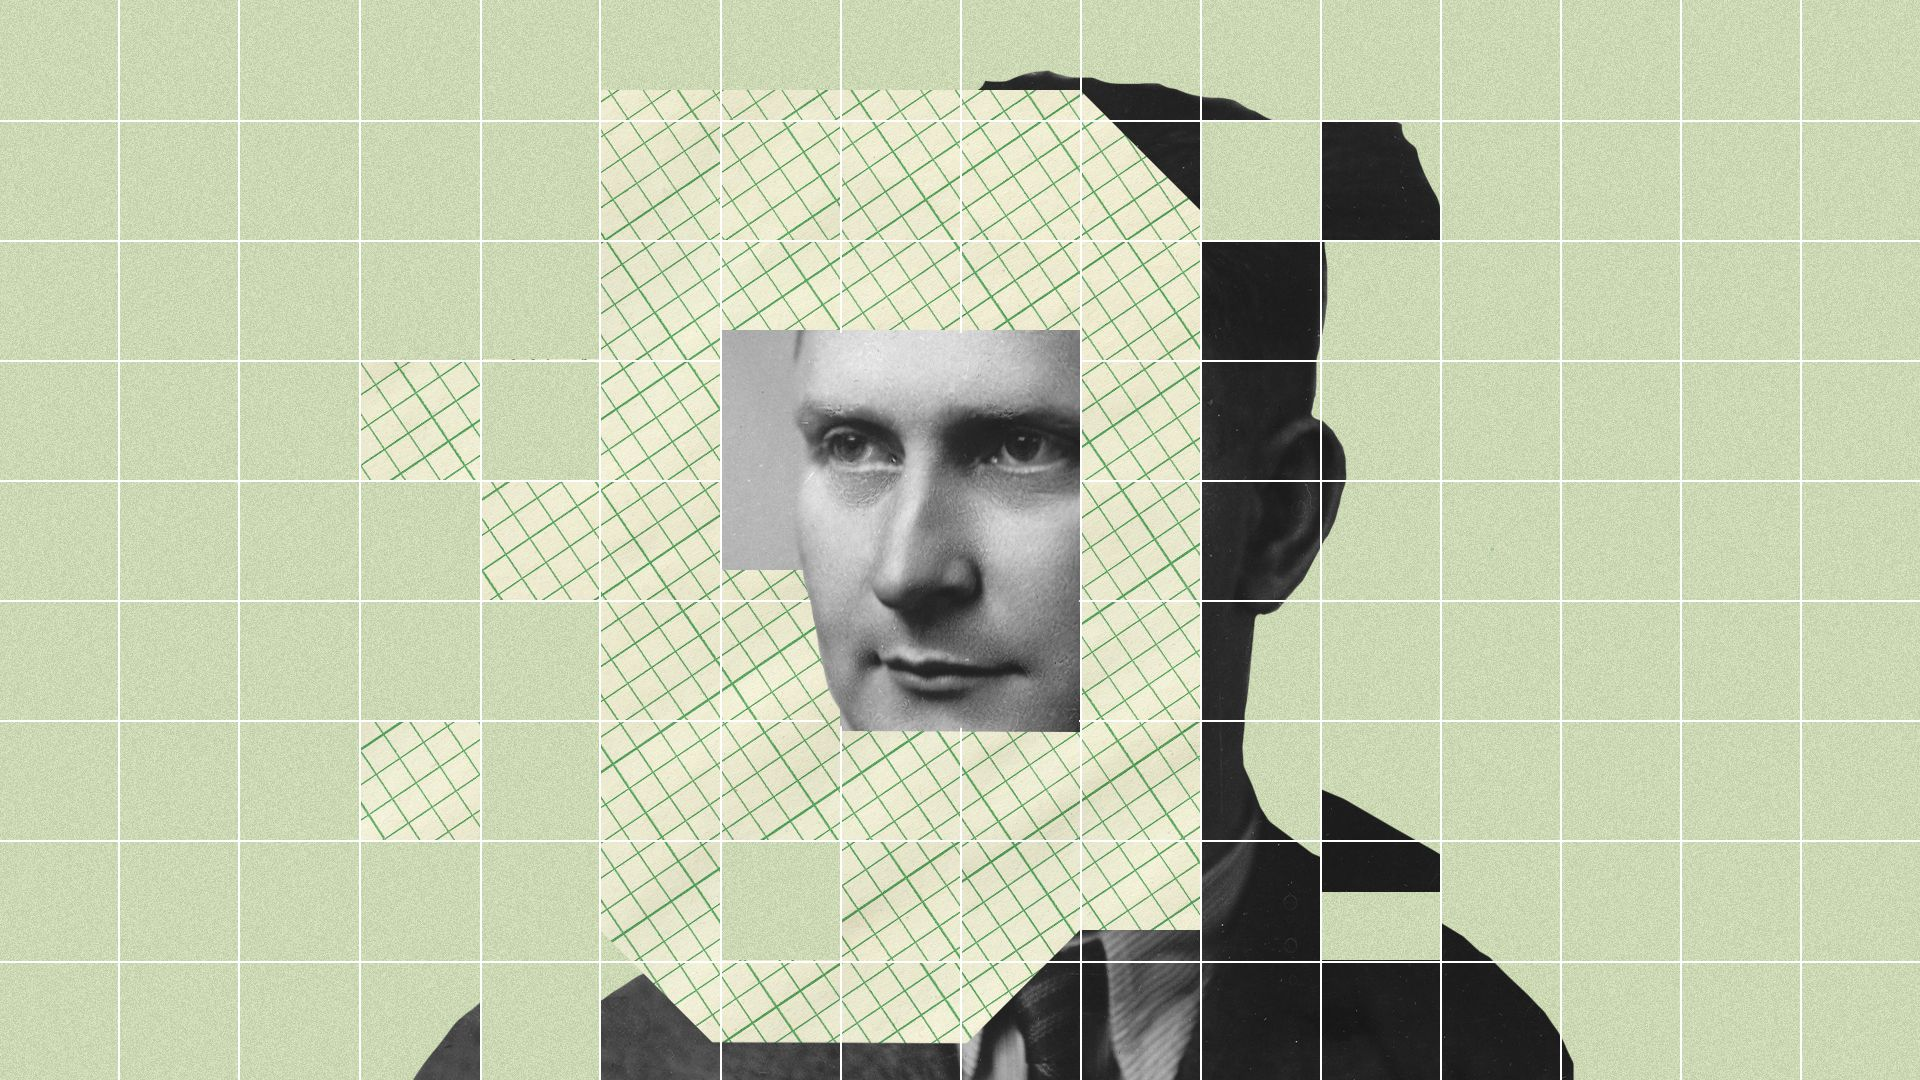 In this illustration, a man's face is cut out into digital blocks.